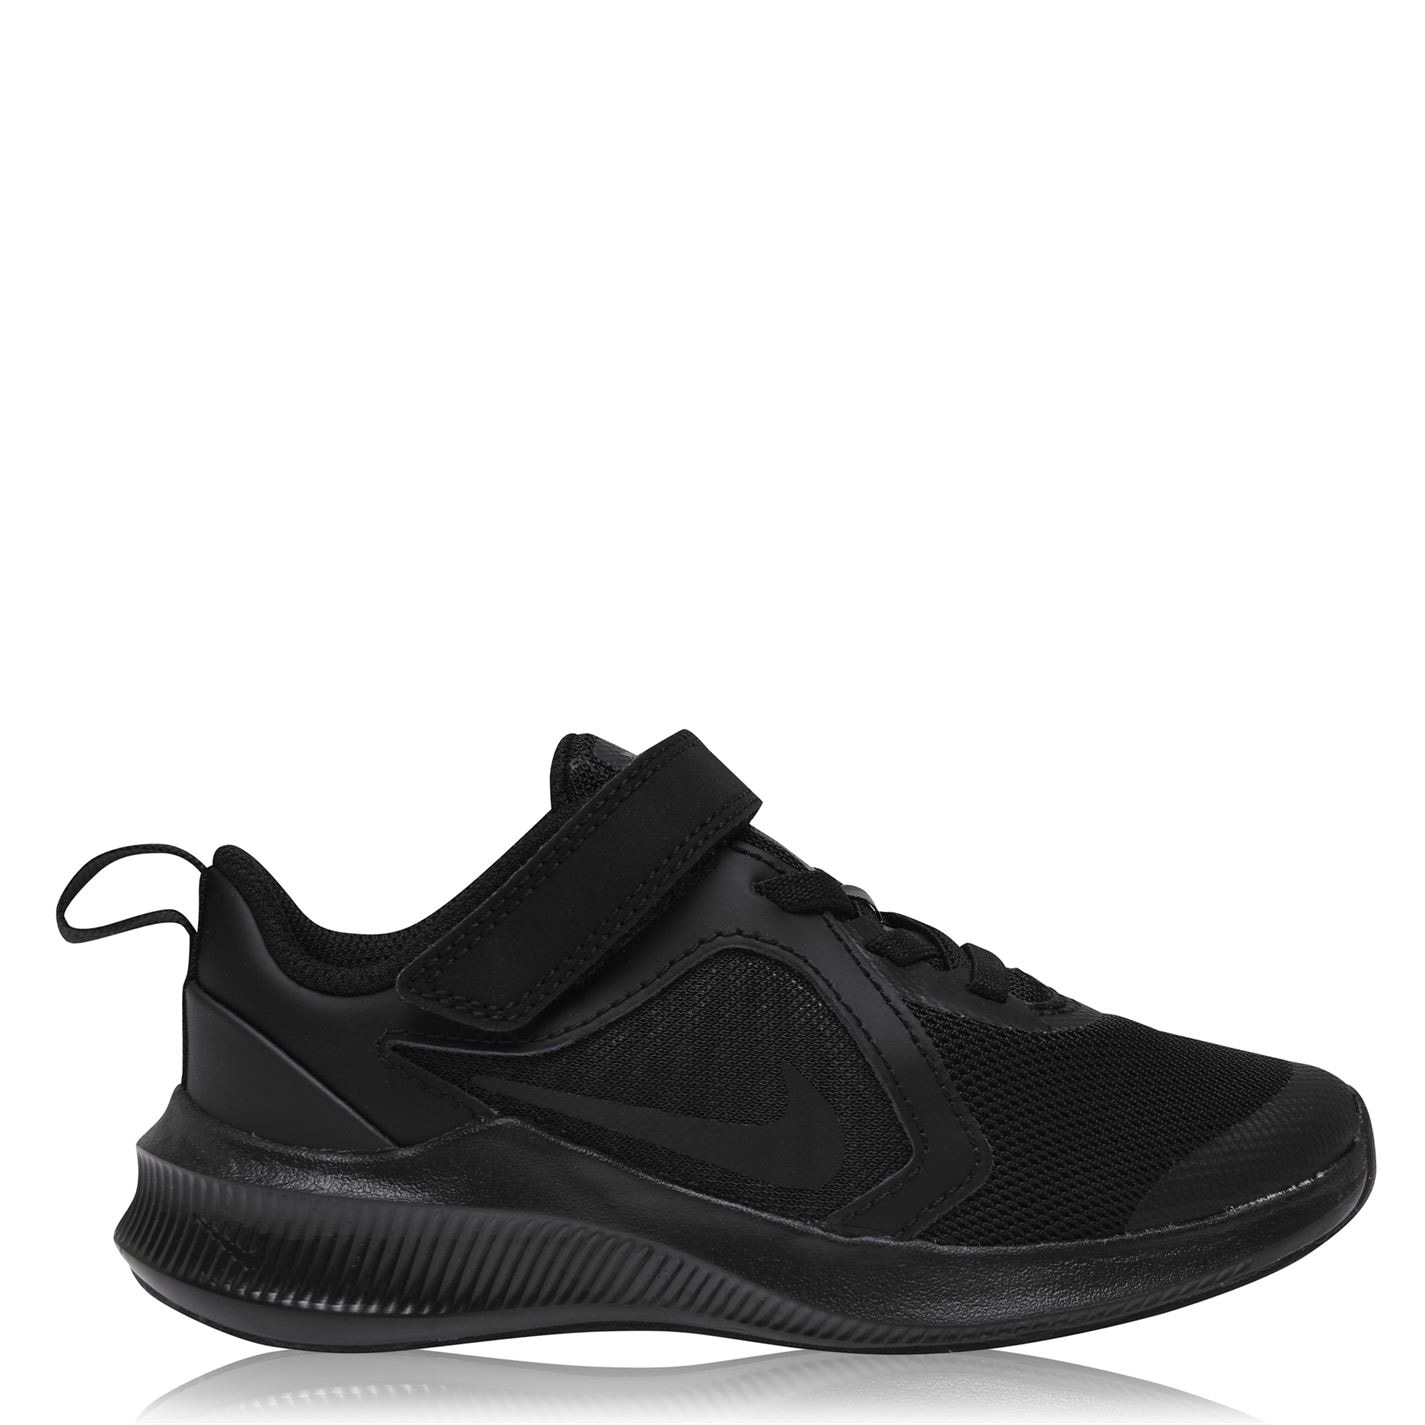 Nike Downshifter 10 Trainers Child Boys BLACK/BLACK-ANTHRACITE